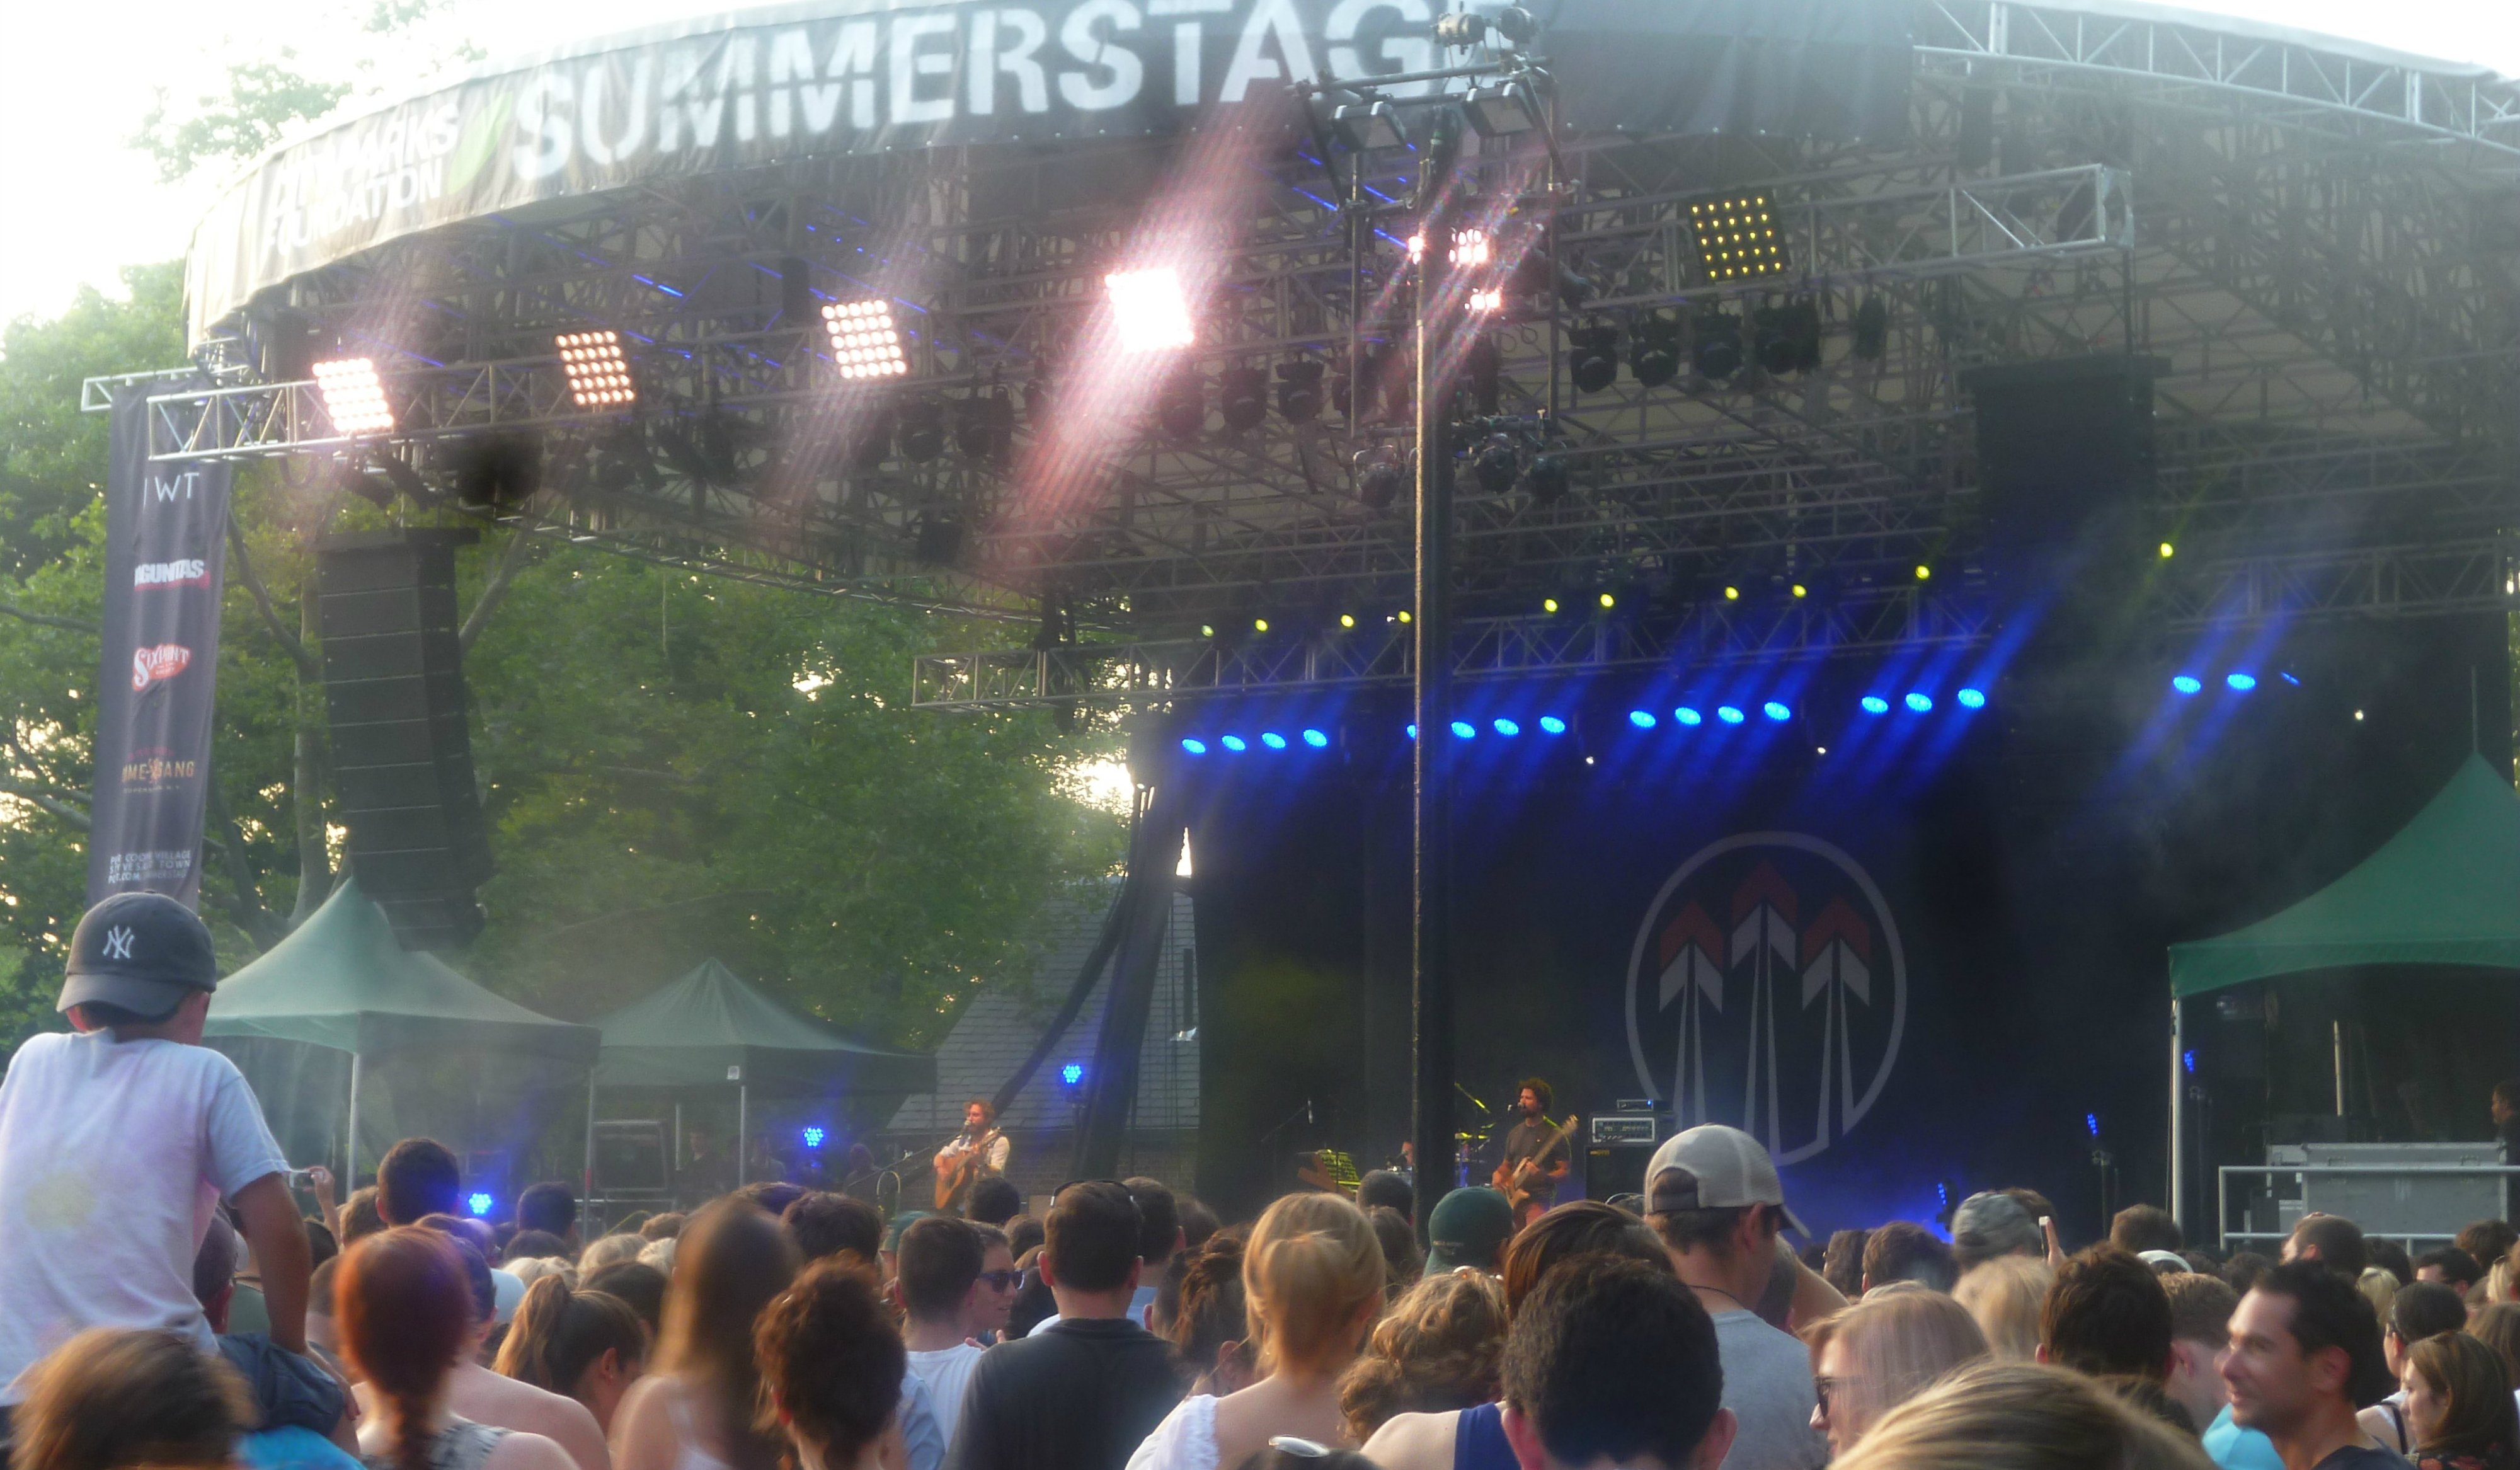 John-Butler-Trio-Central-Park-2014-band-stage-crowd